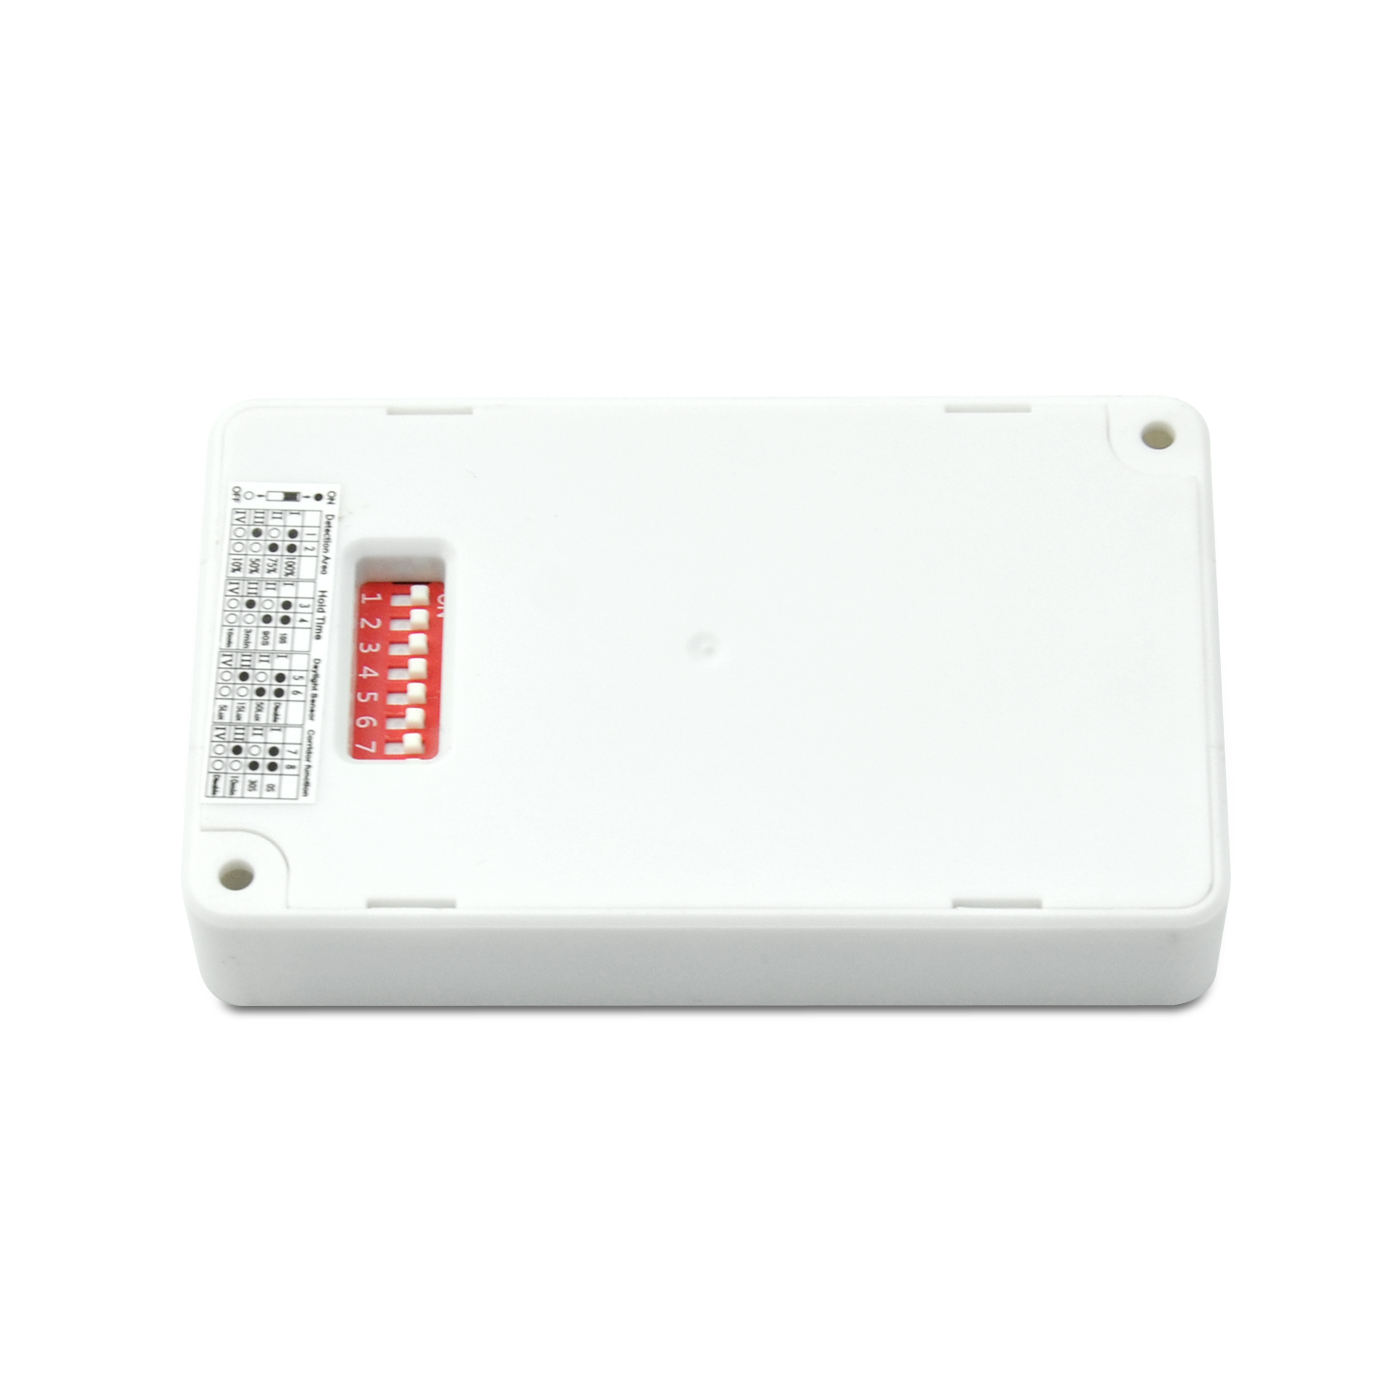 China Manufacturer for 150w Cv Triac Dimmer -